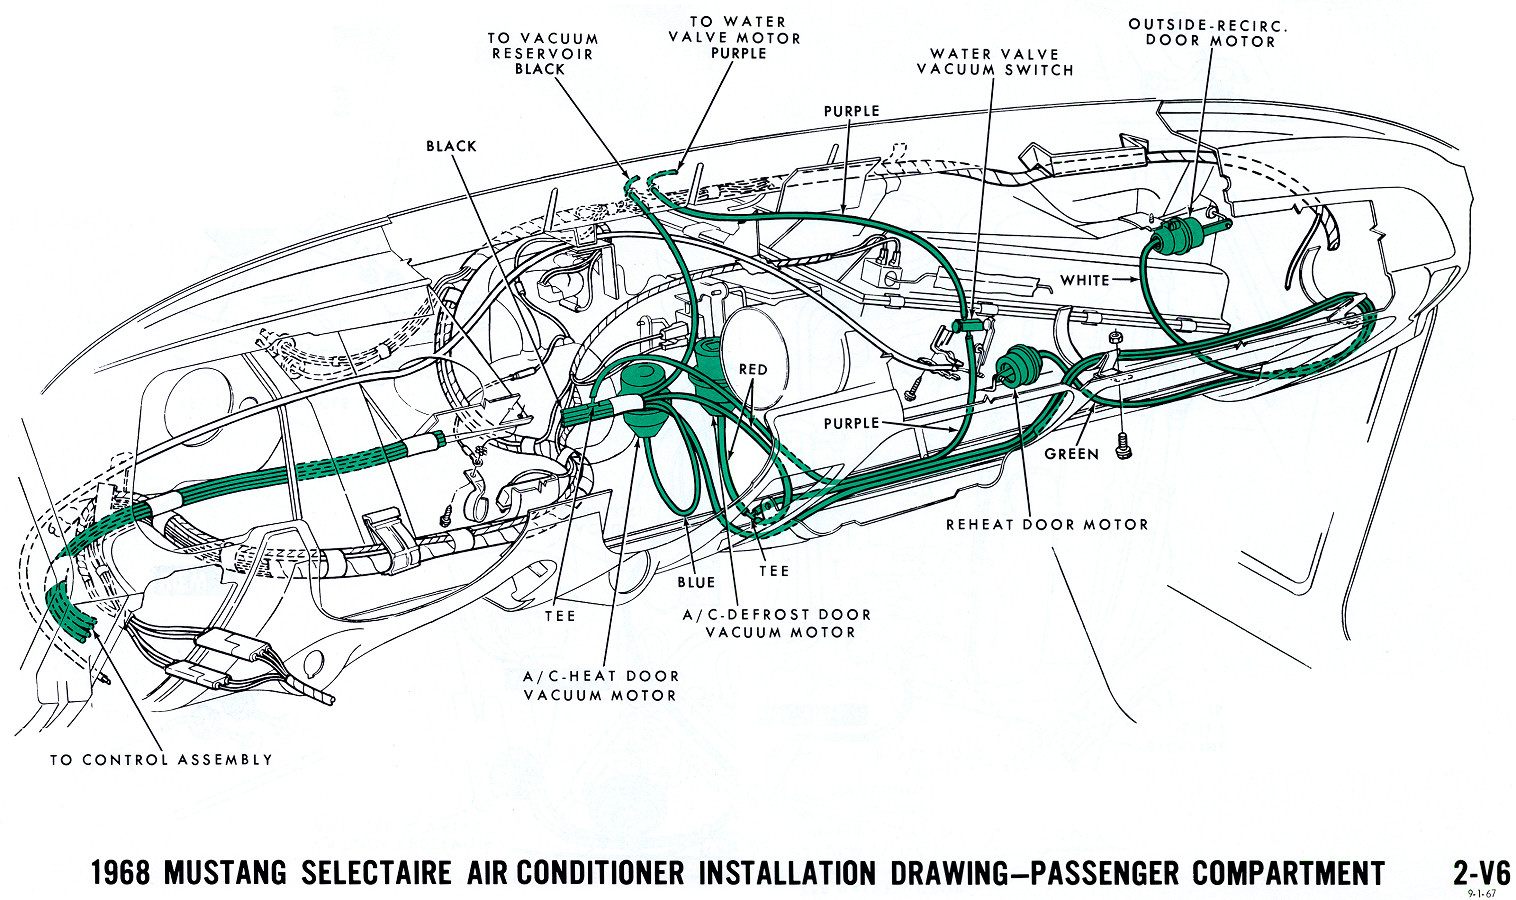 1968 mustang vacuum diagram air conditioning interior 1968 mustang wiring diagrams and vacuum schematics average joe 1966 mustang heater wiring diagram at bayanpartner.co